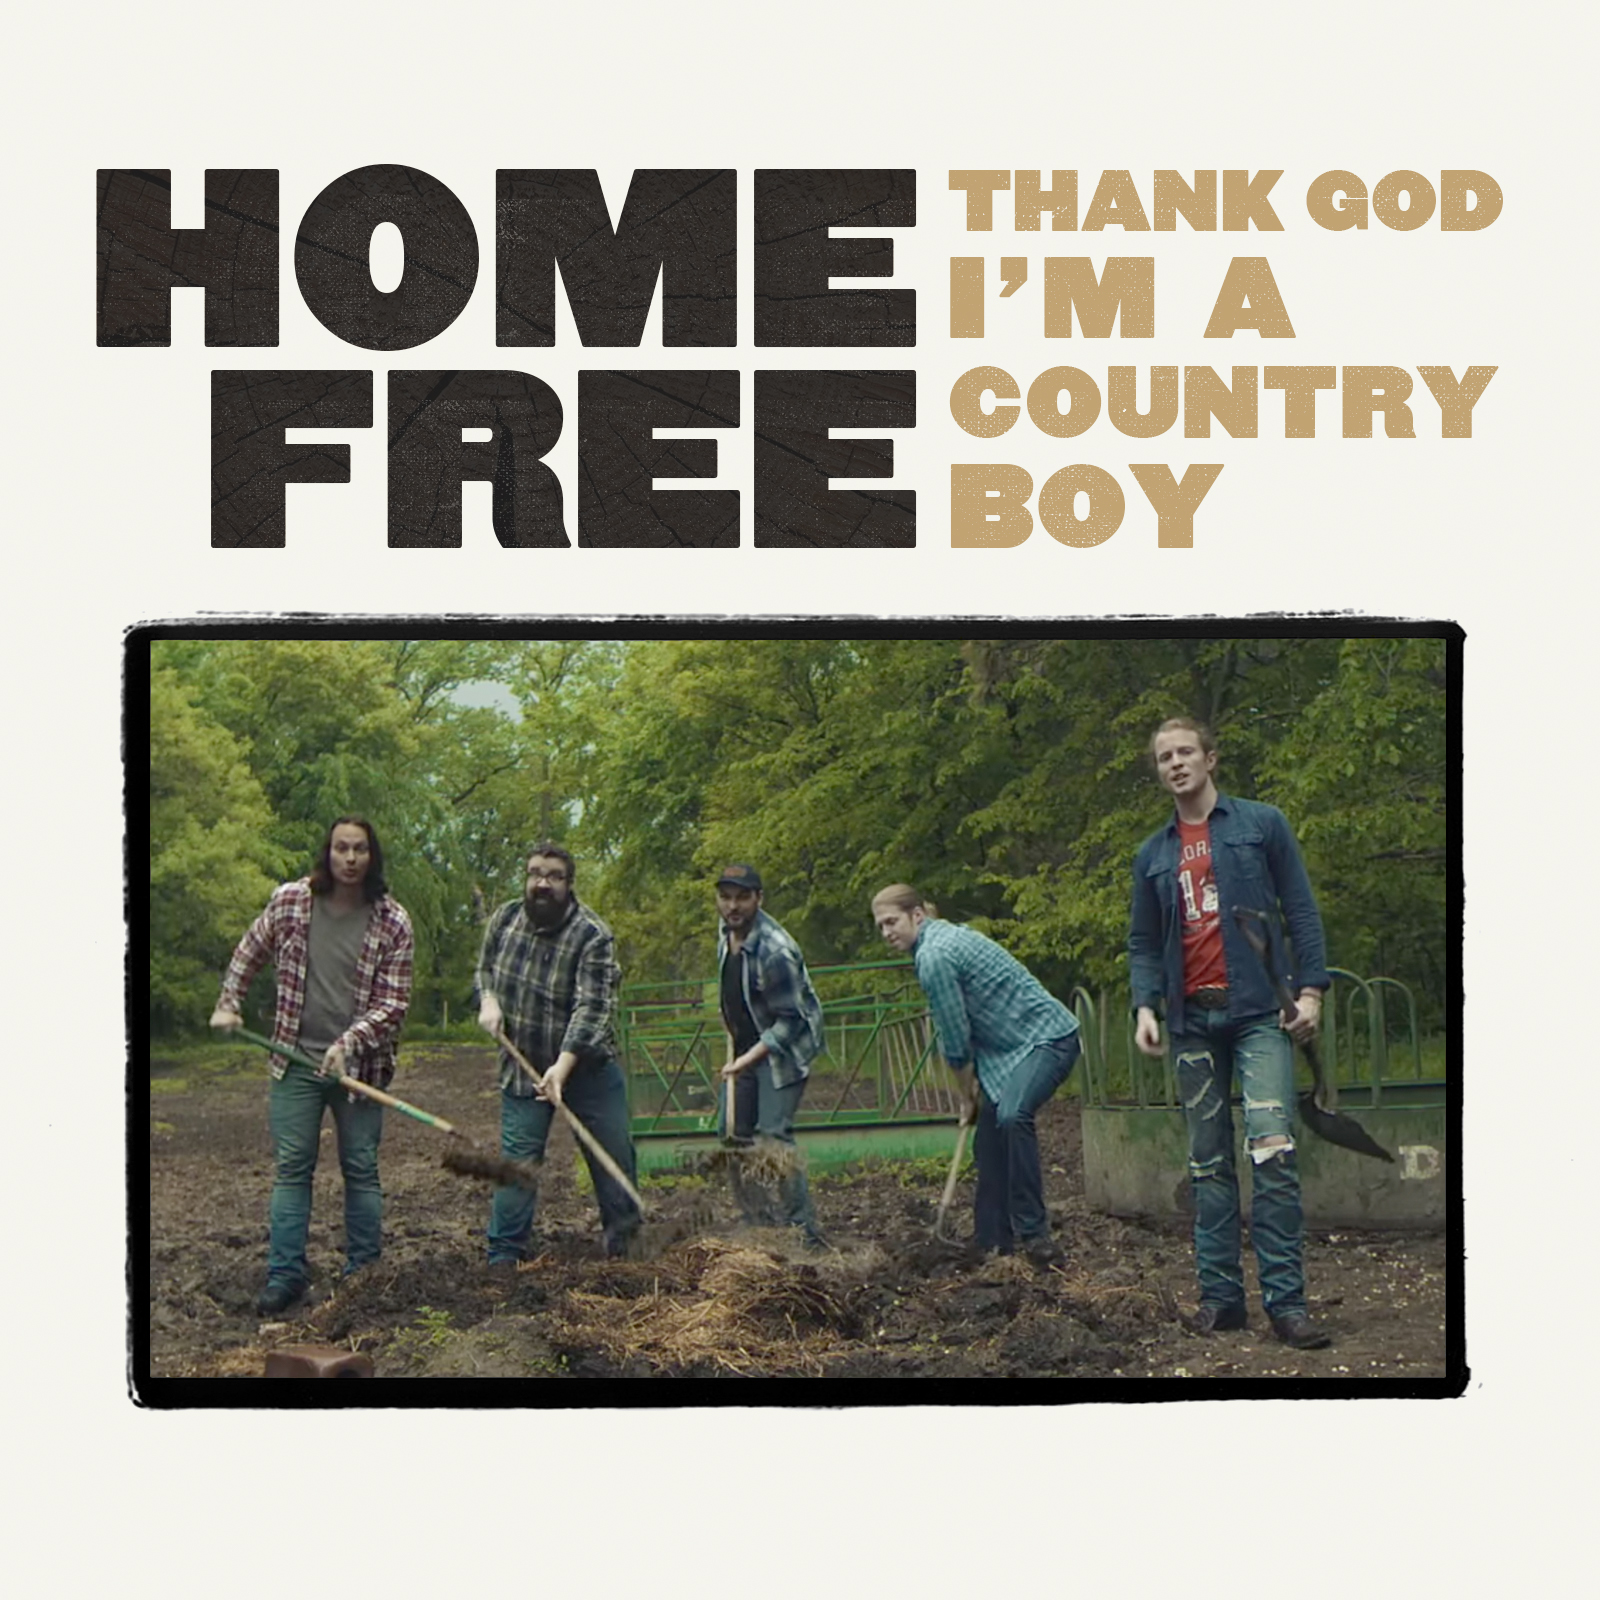 Thank God I'm a Country Boy DARREN RUST Produced/Recorded/Arranged/Mixed